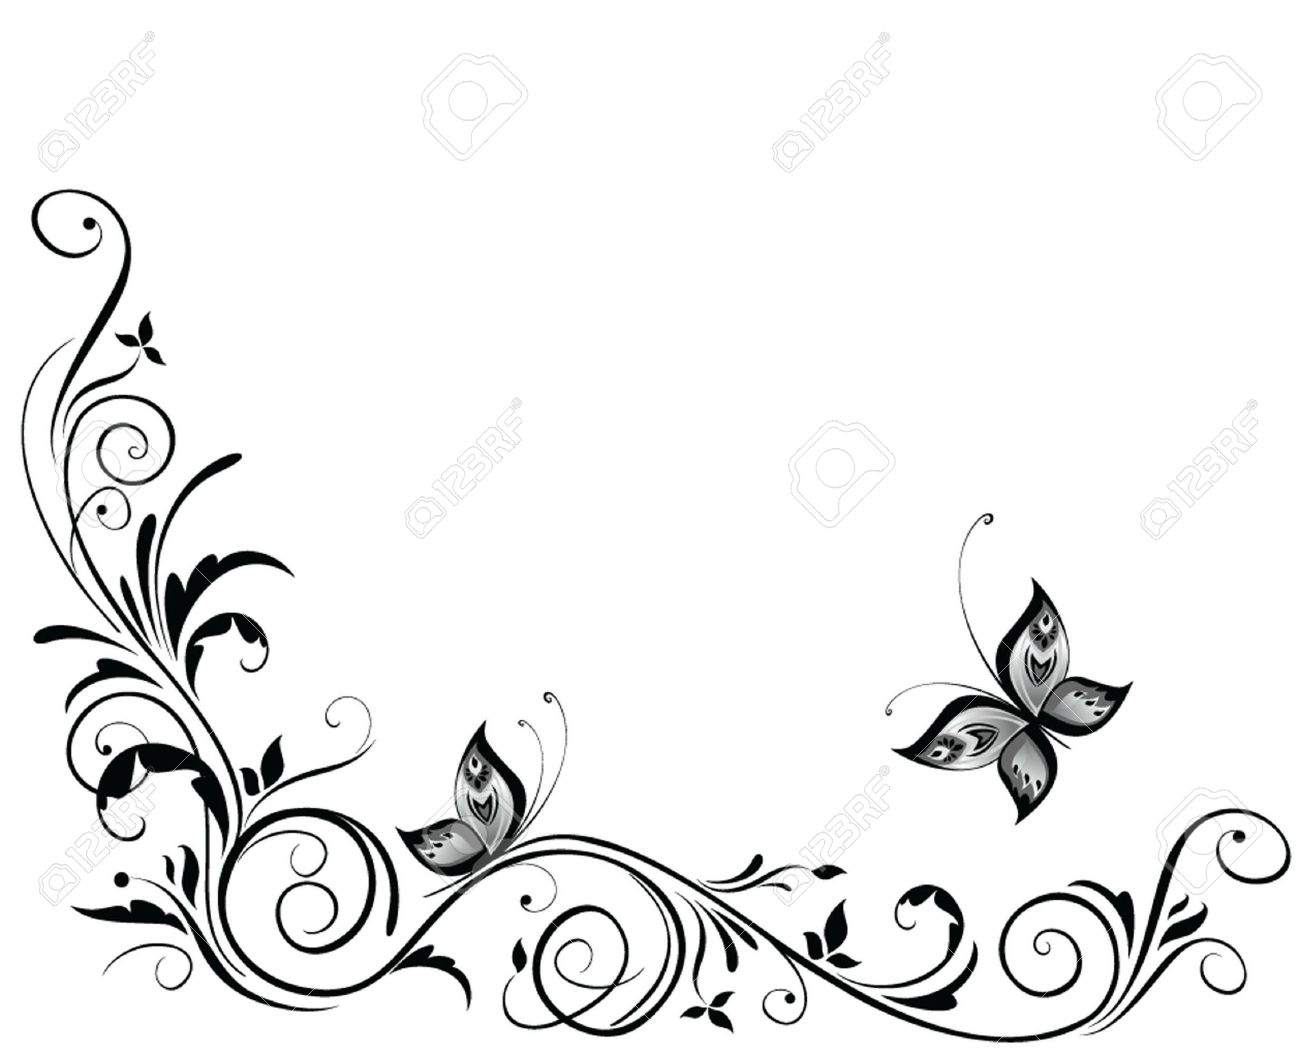 Border Design Drawing At Getdrawings Com Free For